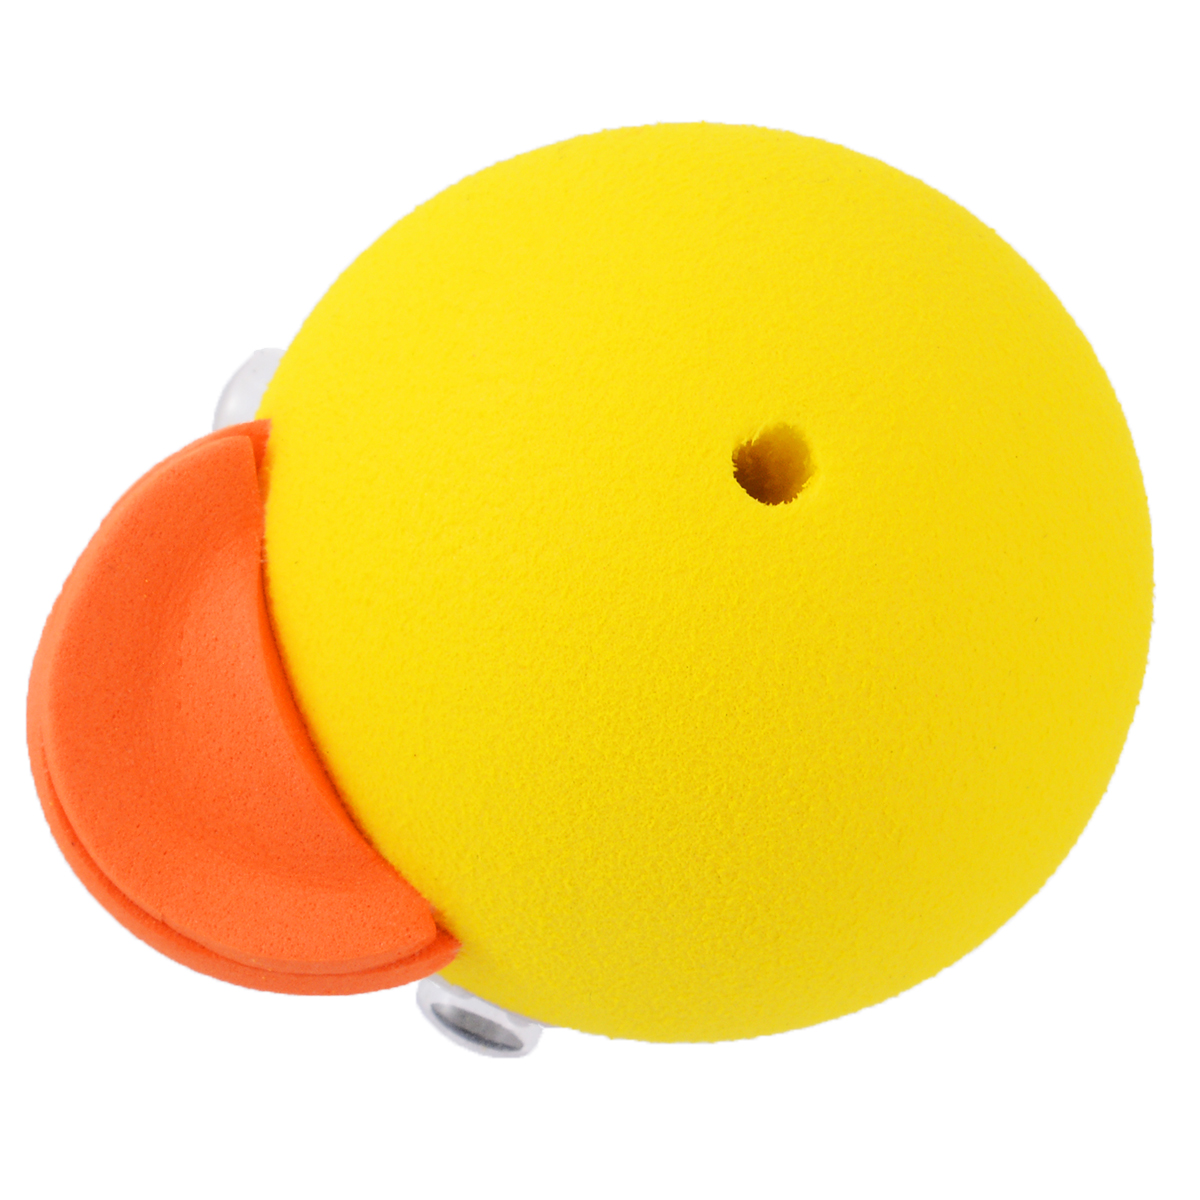 1*Cute Yellow Duck Car Antenna Pen Topper Aerial Ball Decoration Gift Toy